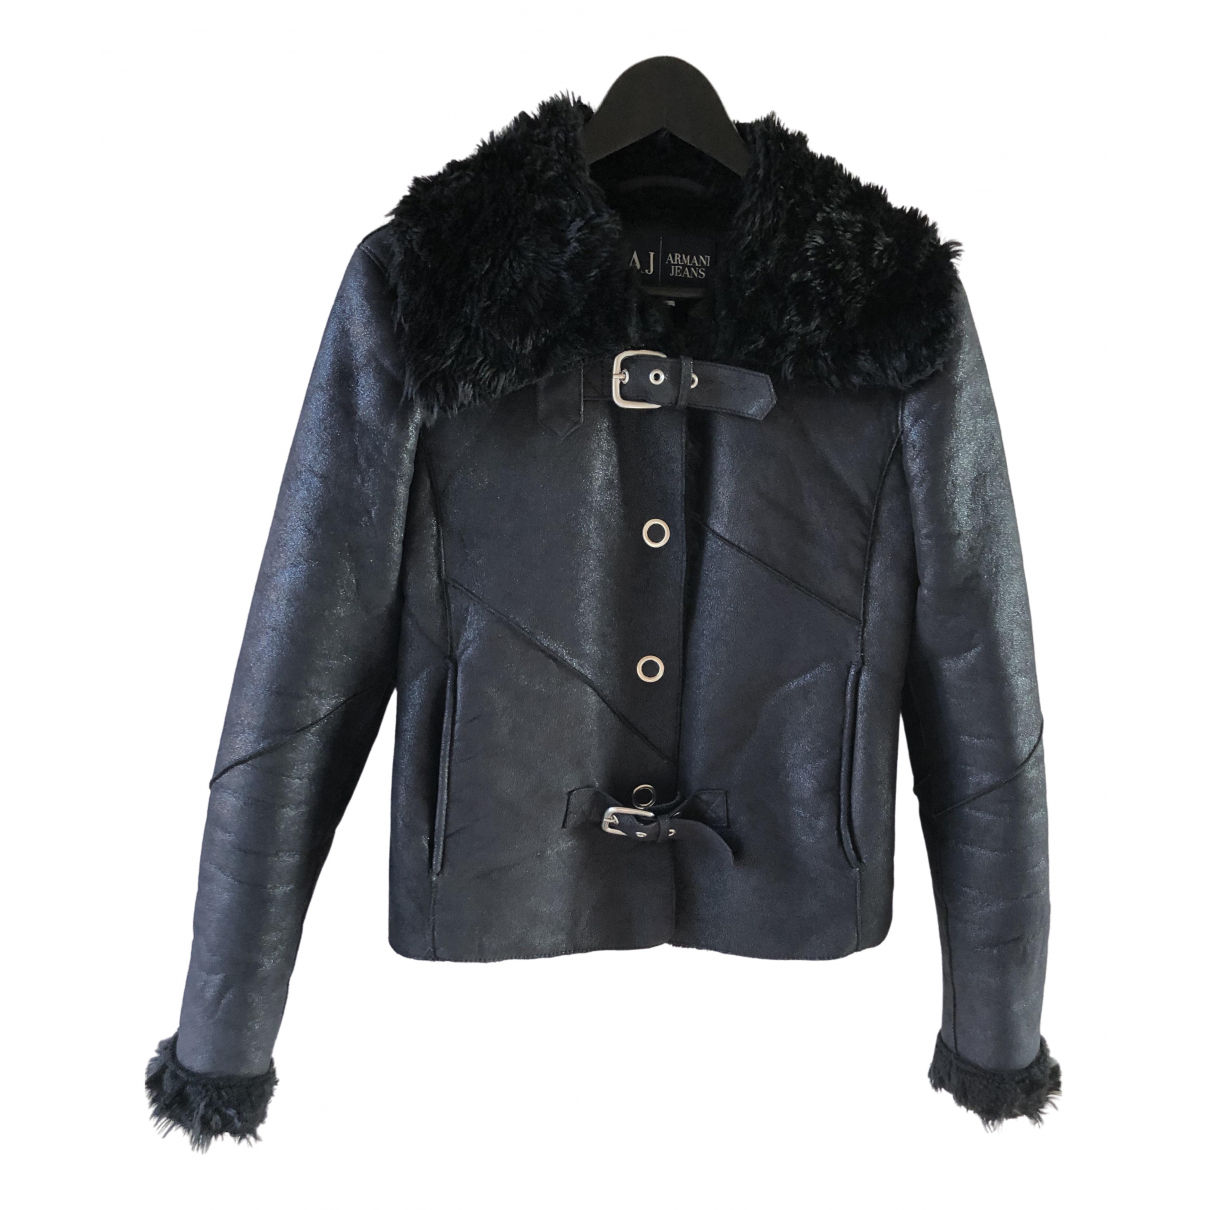 Armani Jeans \N Black Leather jacket for Women 40 IT